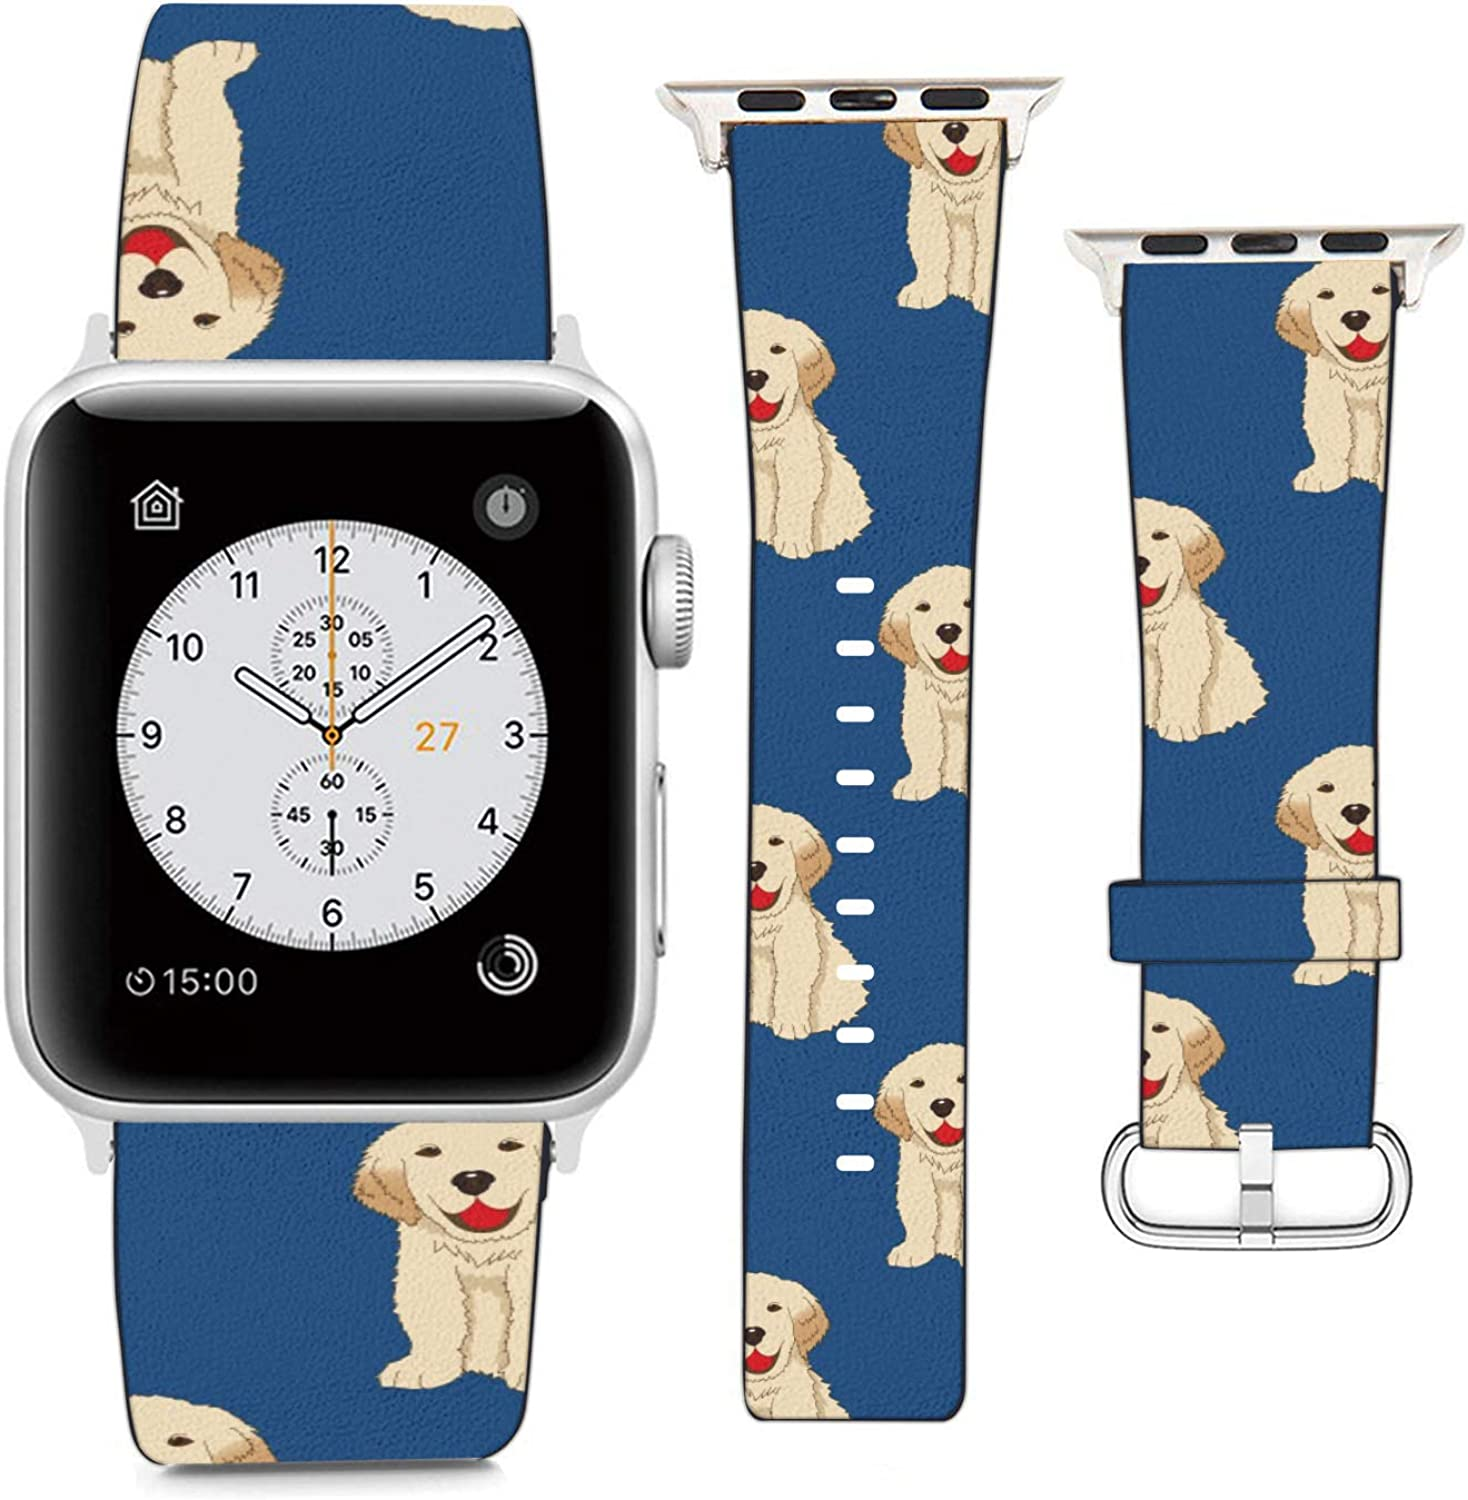 Compatible with Apple Watch Wristband 42mm 44mm, (Golden Retriever Puppy) PU Leather Band Replacement Strap for iWatch Series 5 4 3 2 1